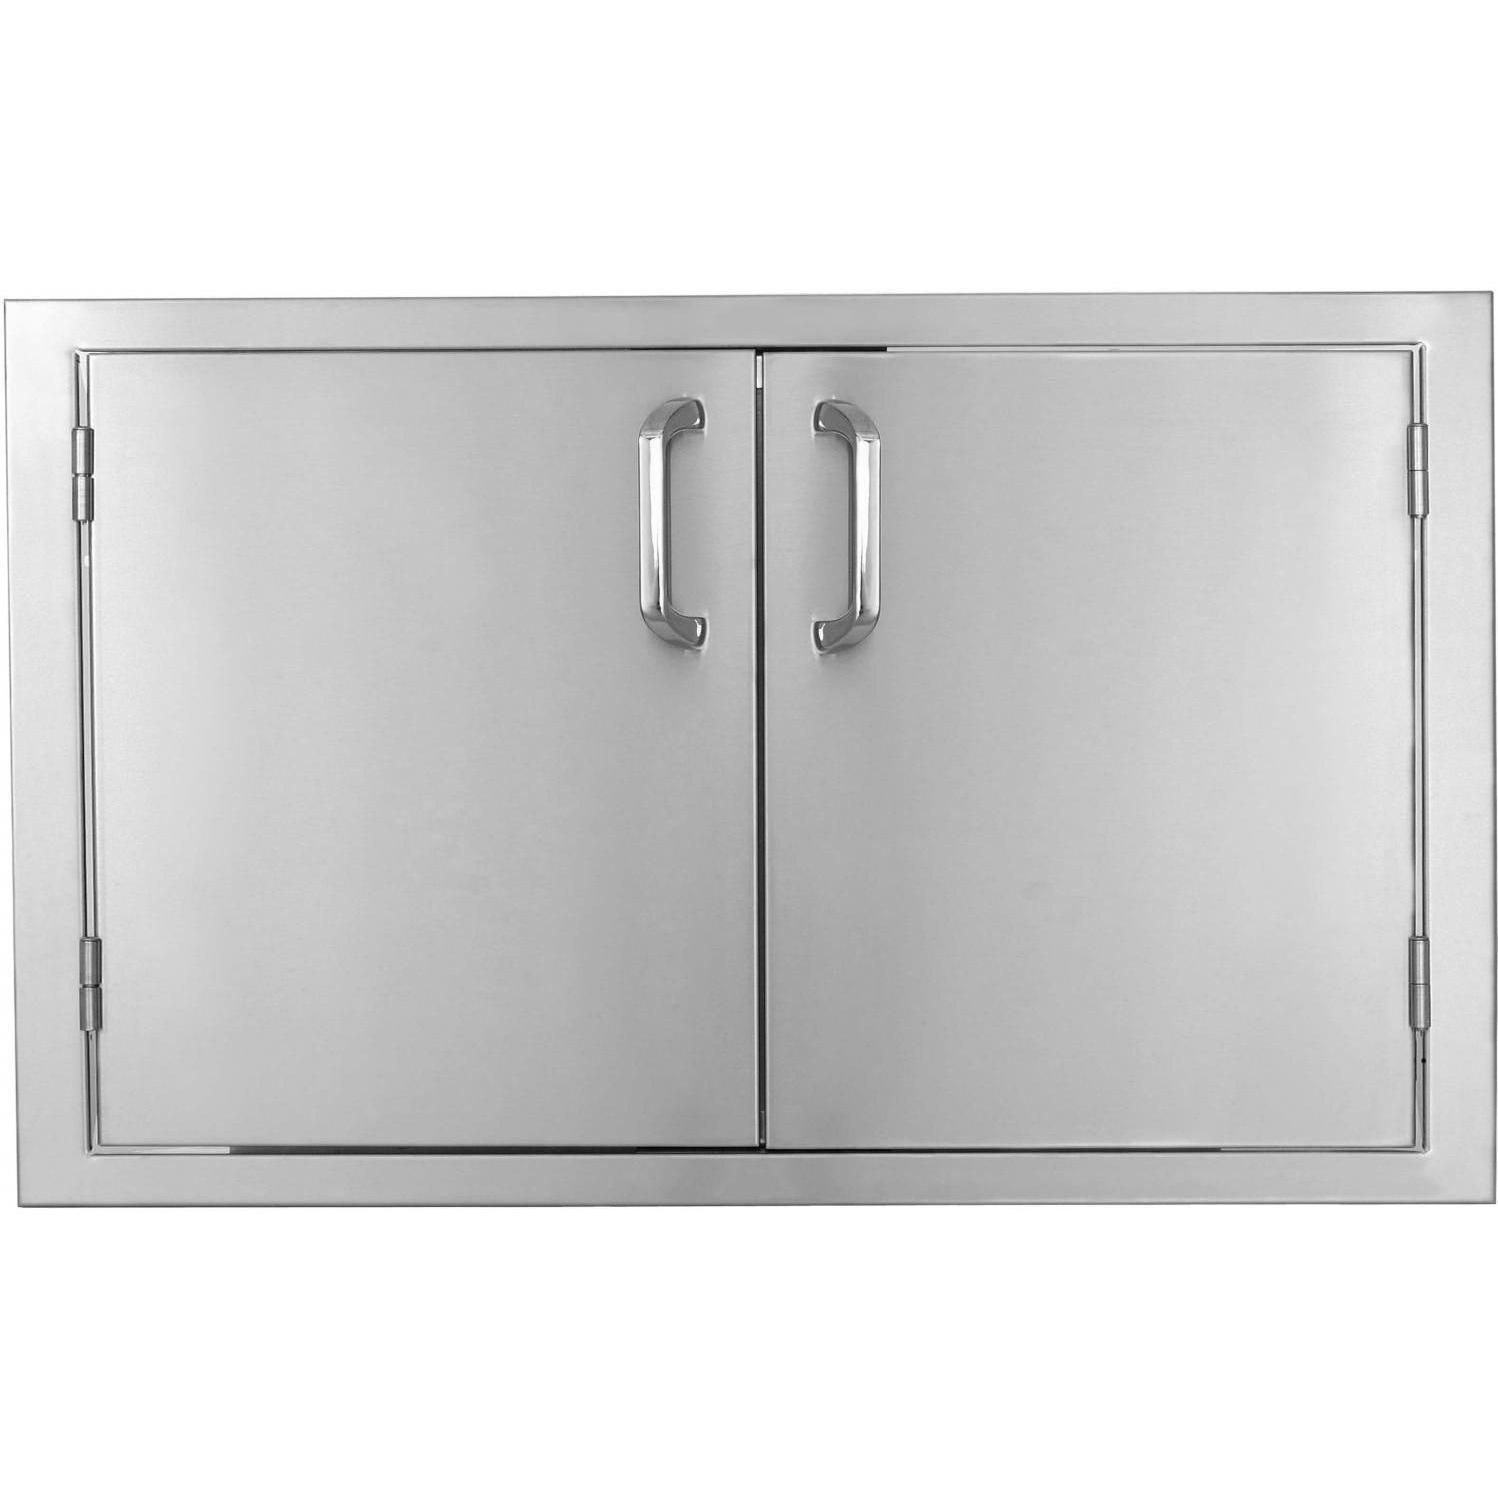 BBQGuys.com Kingston Series 36-Inch Stainless Steel Double Access Door available at BBQ